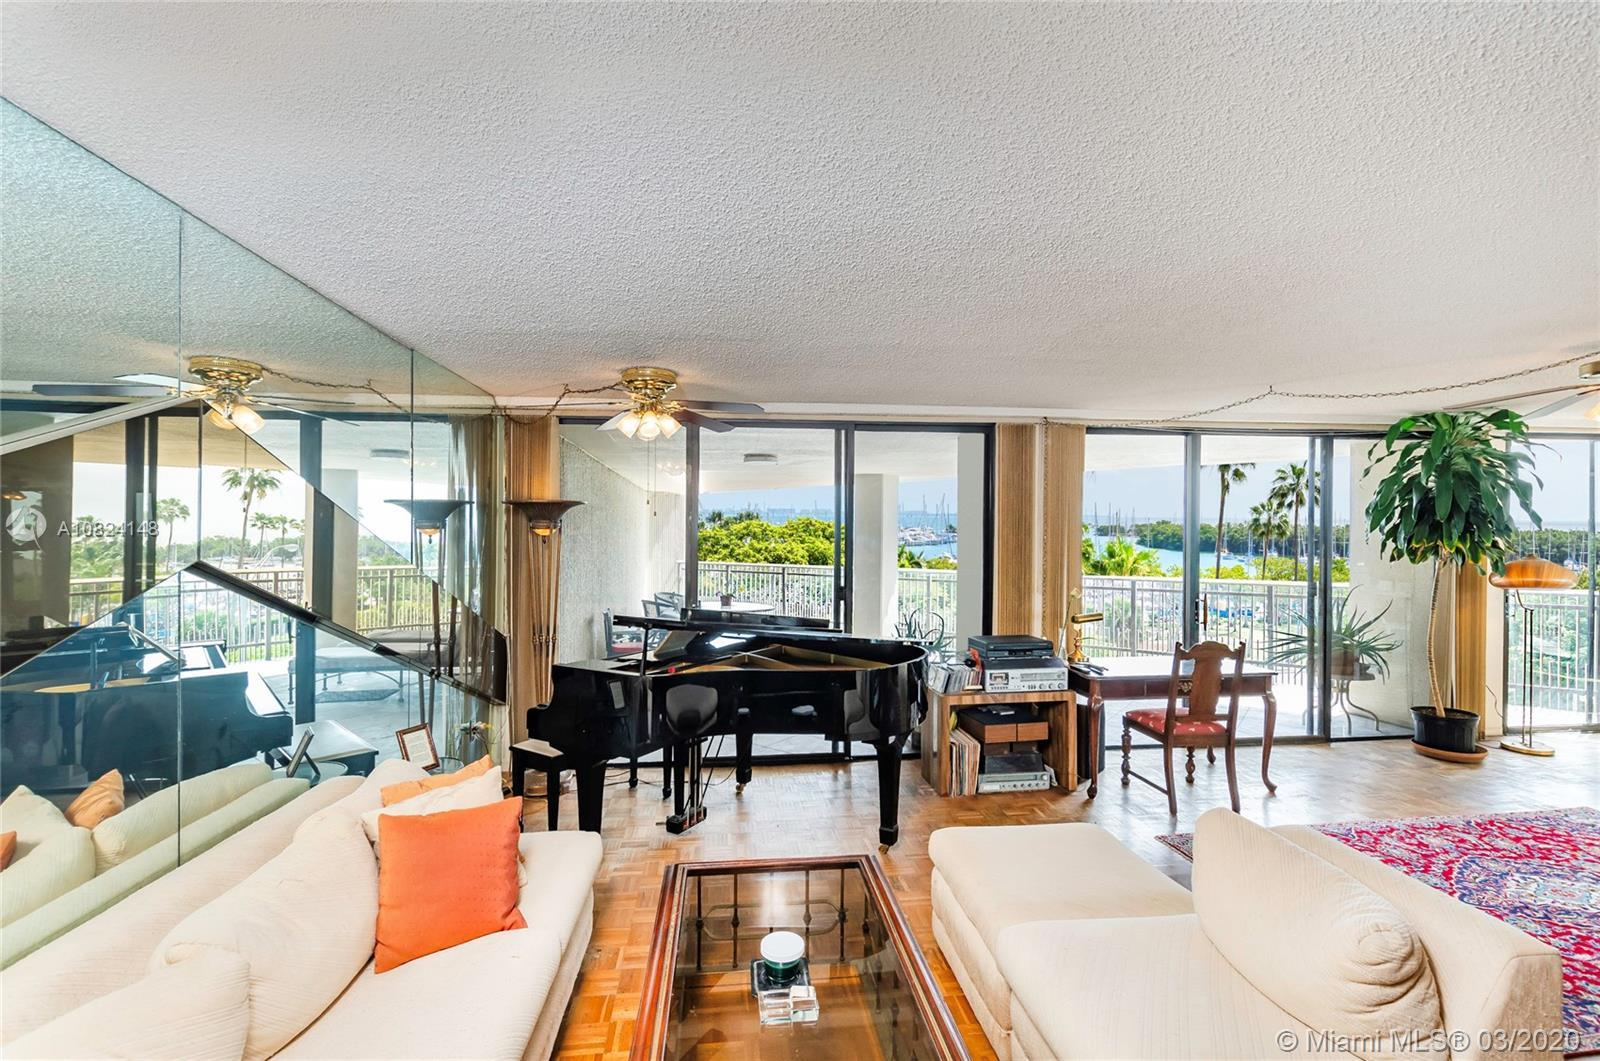 Fabulous Yacht Harbour Condominium prestige & secure building in the heart of Coconut Grove. The spa